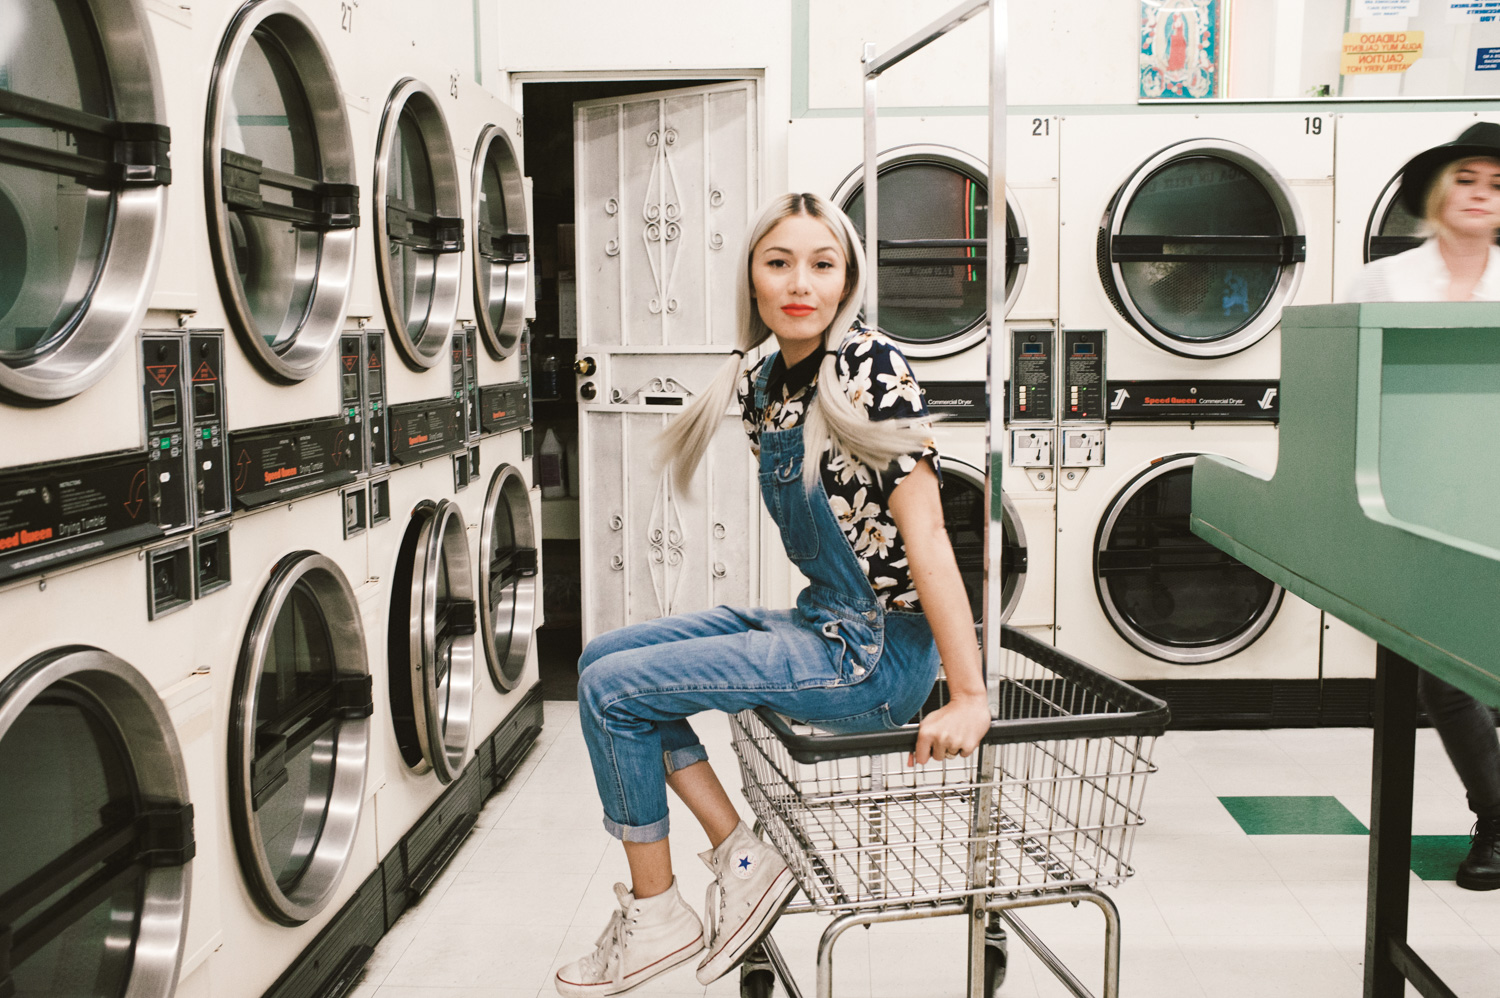 A woman sitting on a cart as she rolled down an aisle at a laundry mat